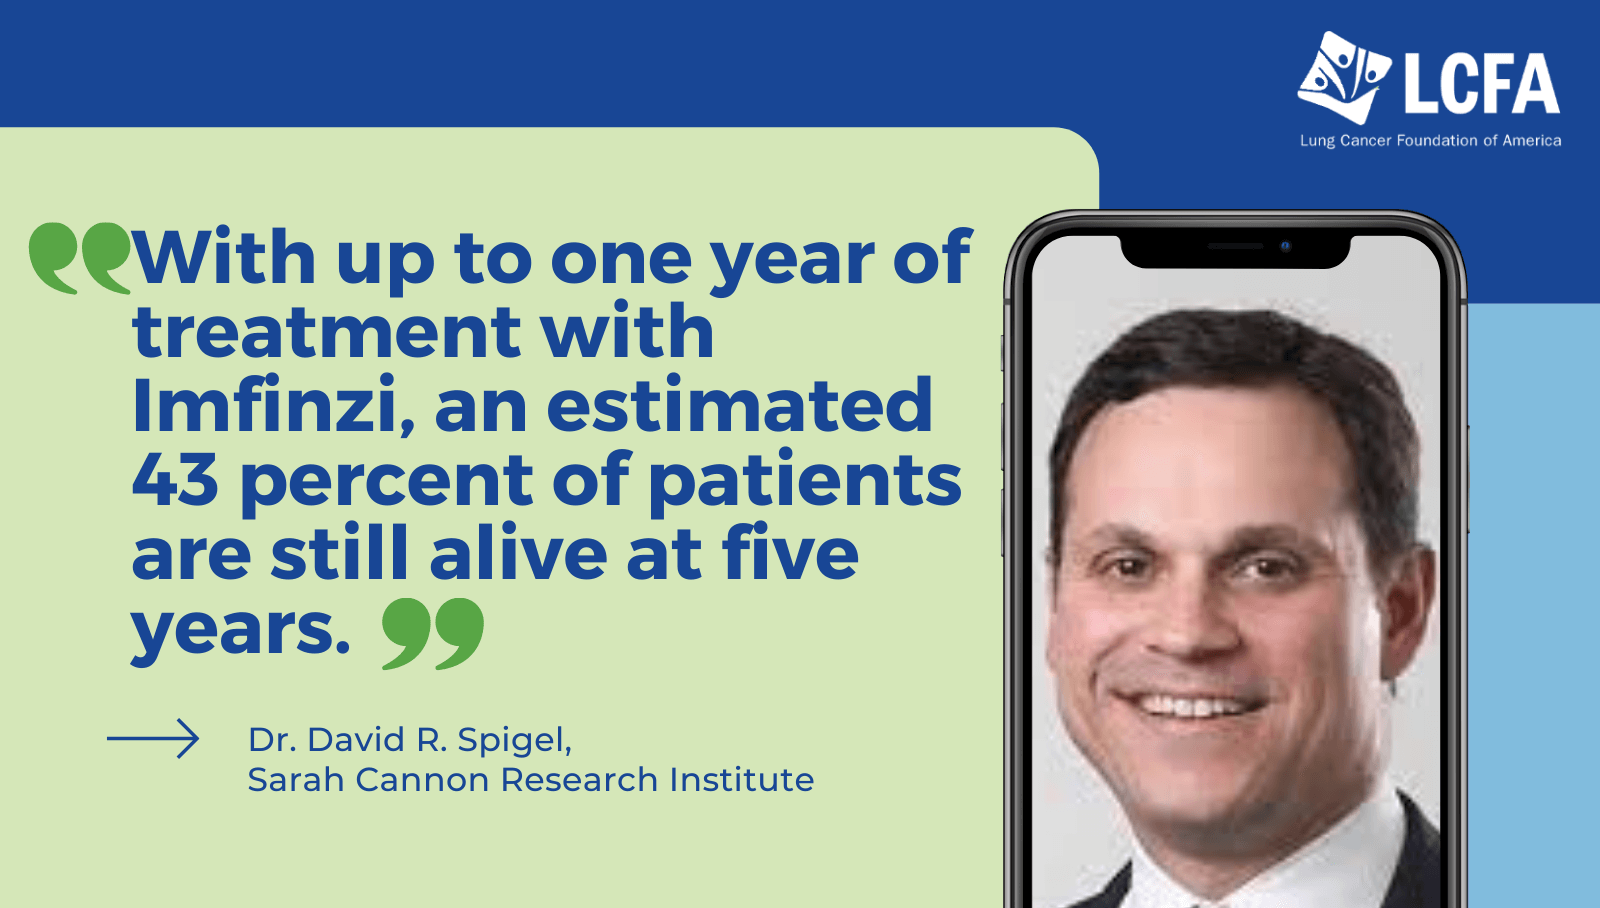 With up to 1 year of treatment with imfinzi, an estimated 43% of patients are still alive at 5 years.